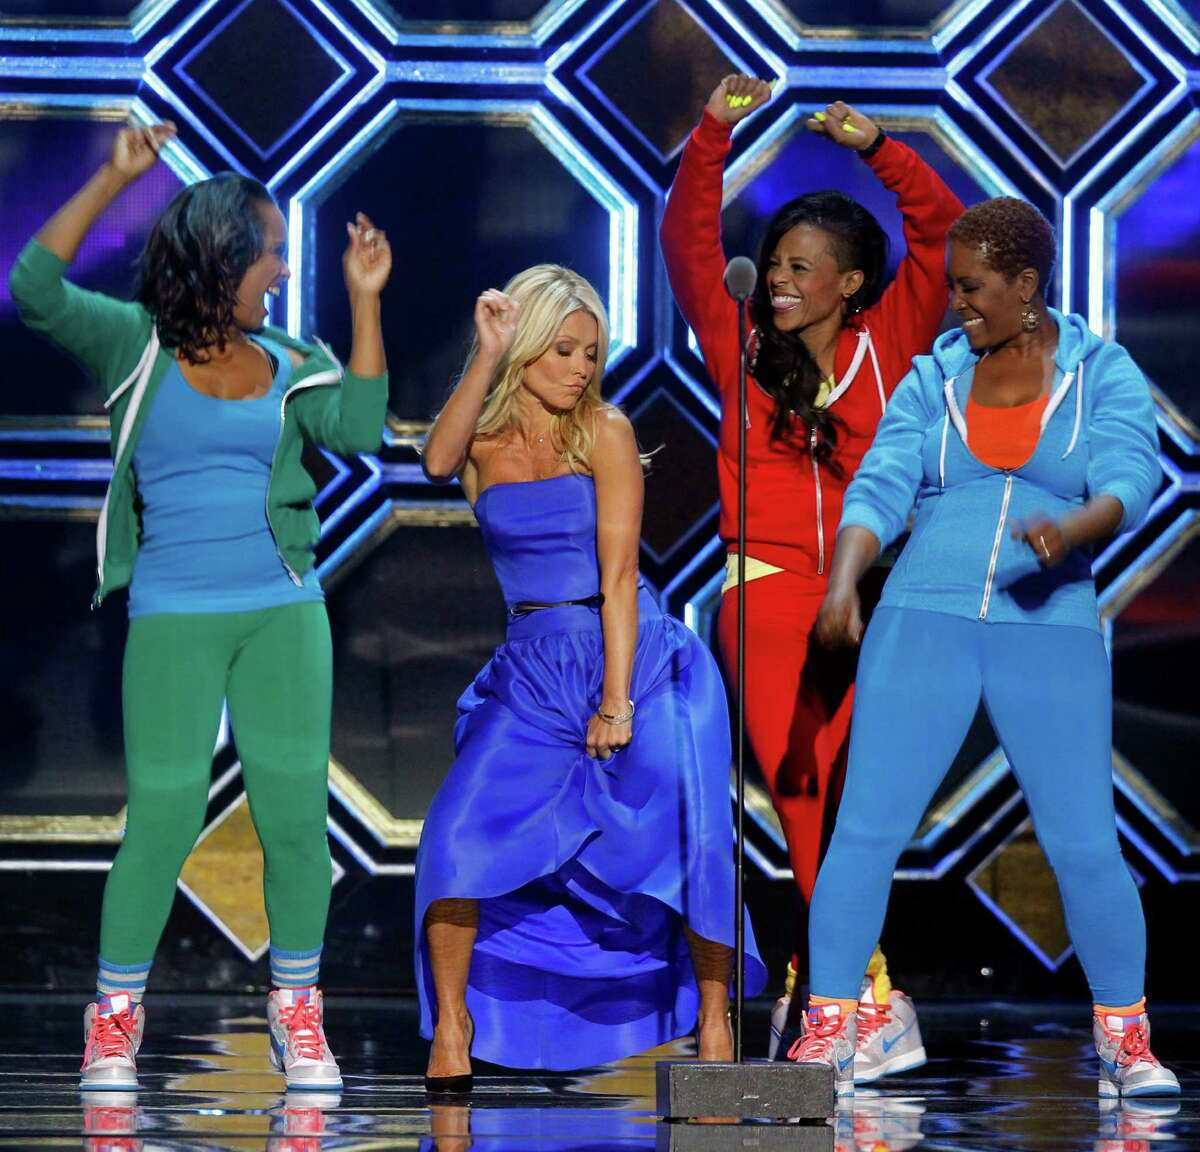 Host Kelly Ripa, center, dances with